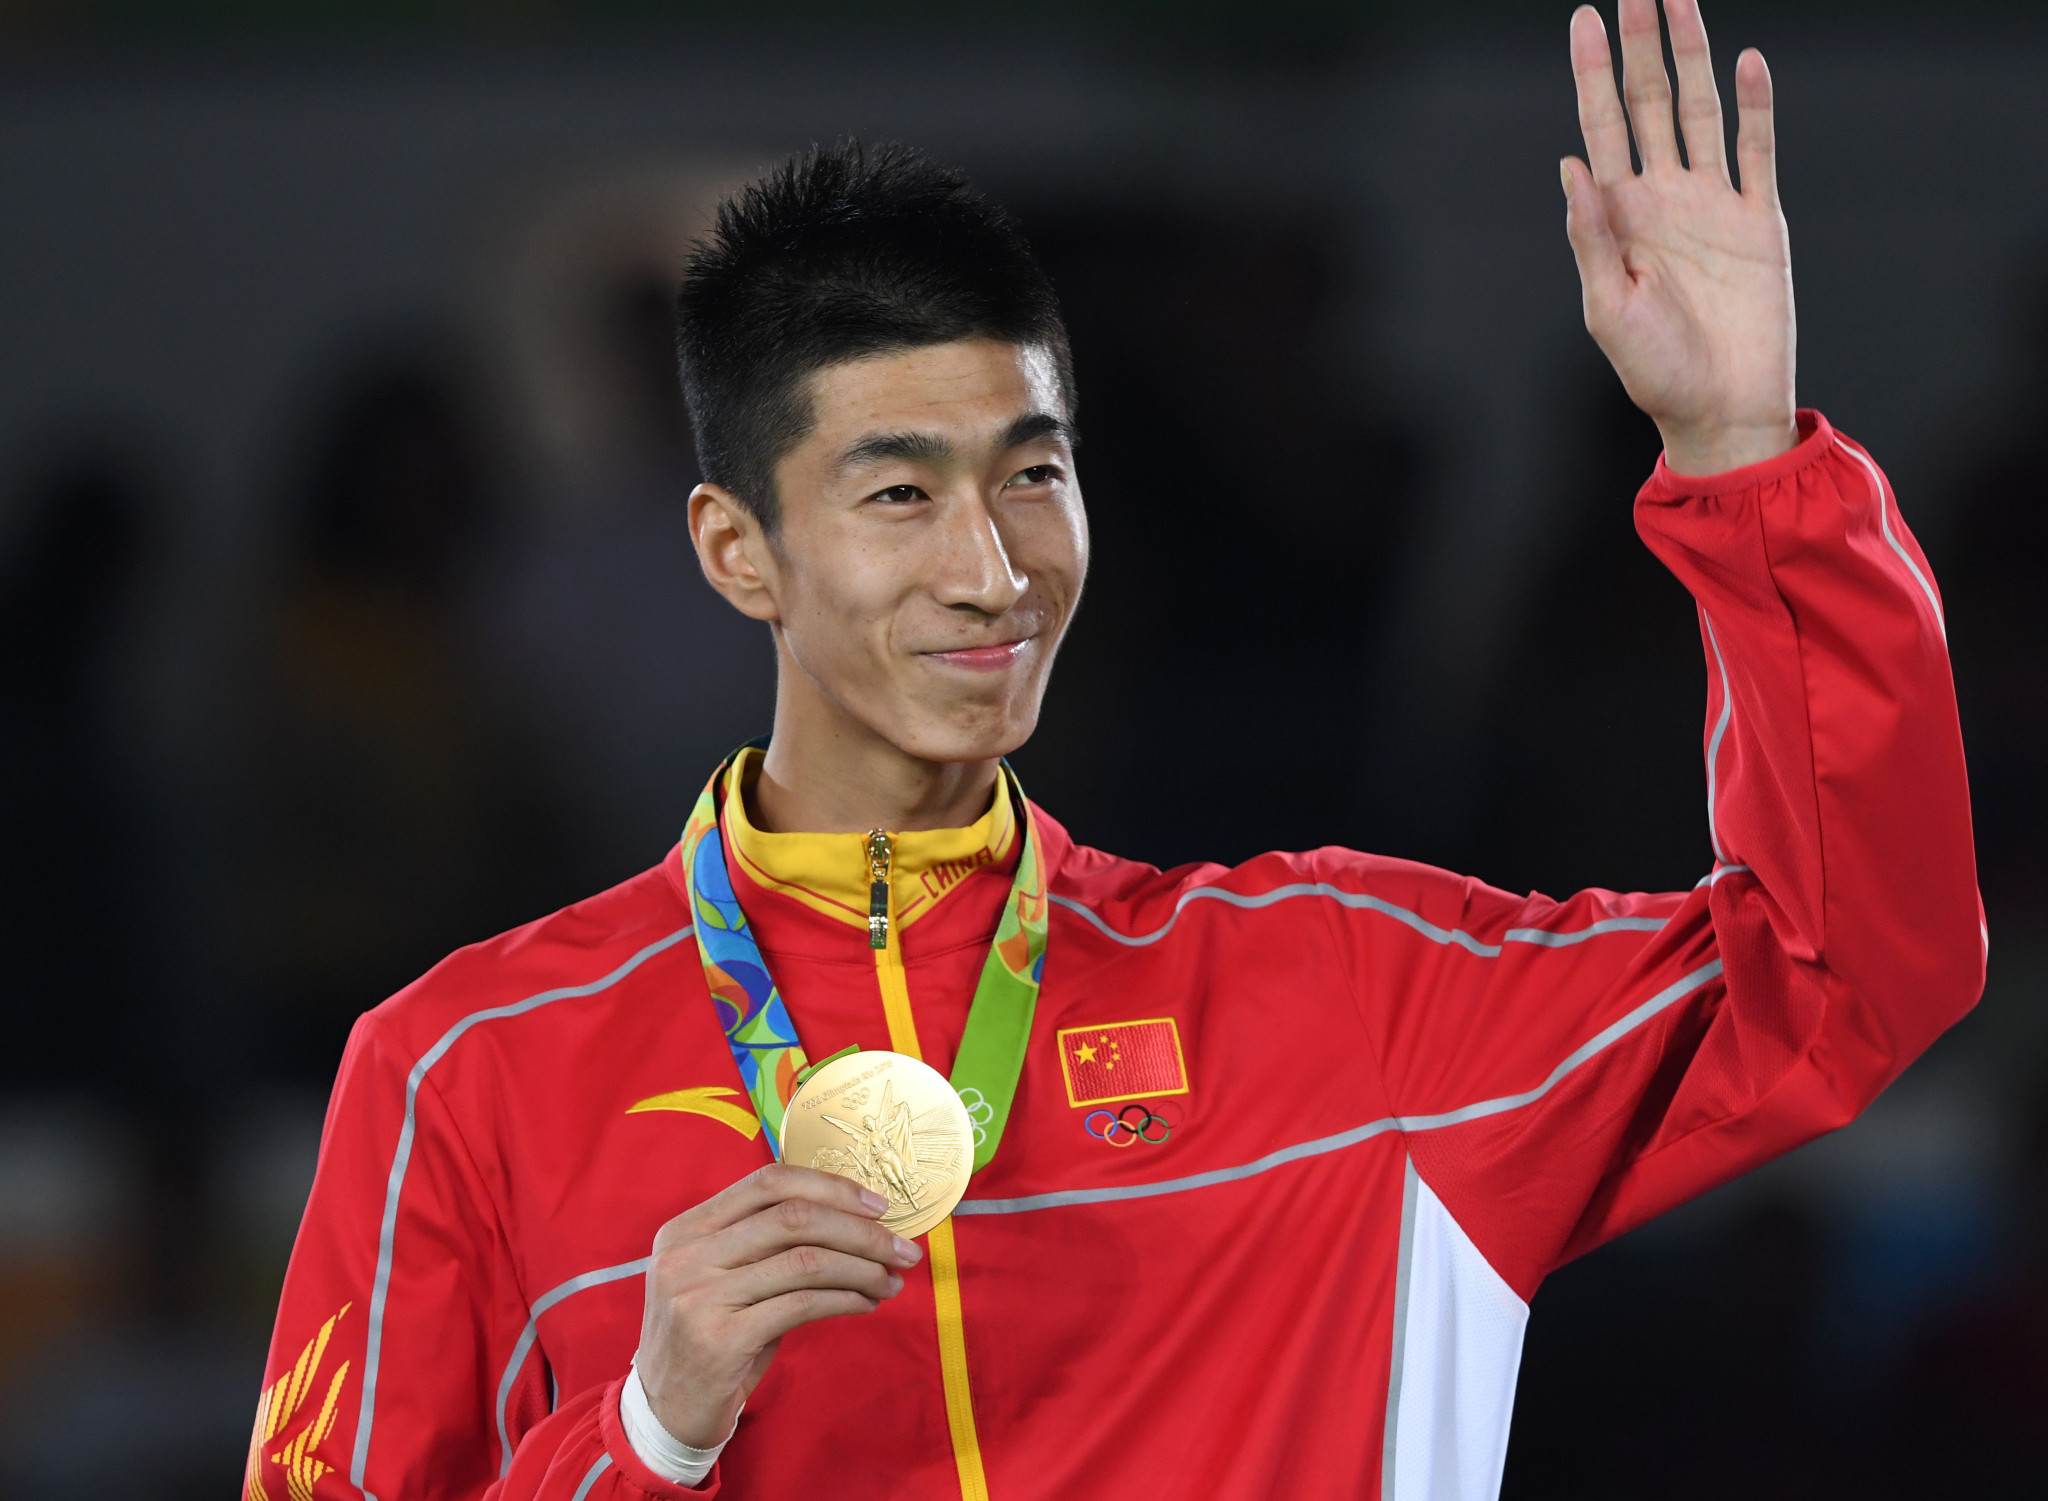 Shuai Zhao won Olympic gold at Rio 2016  ©Getty Images